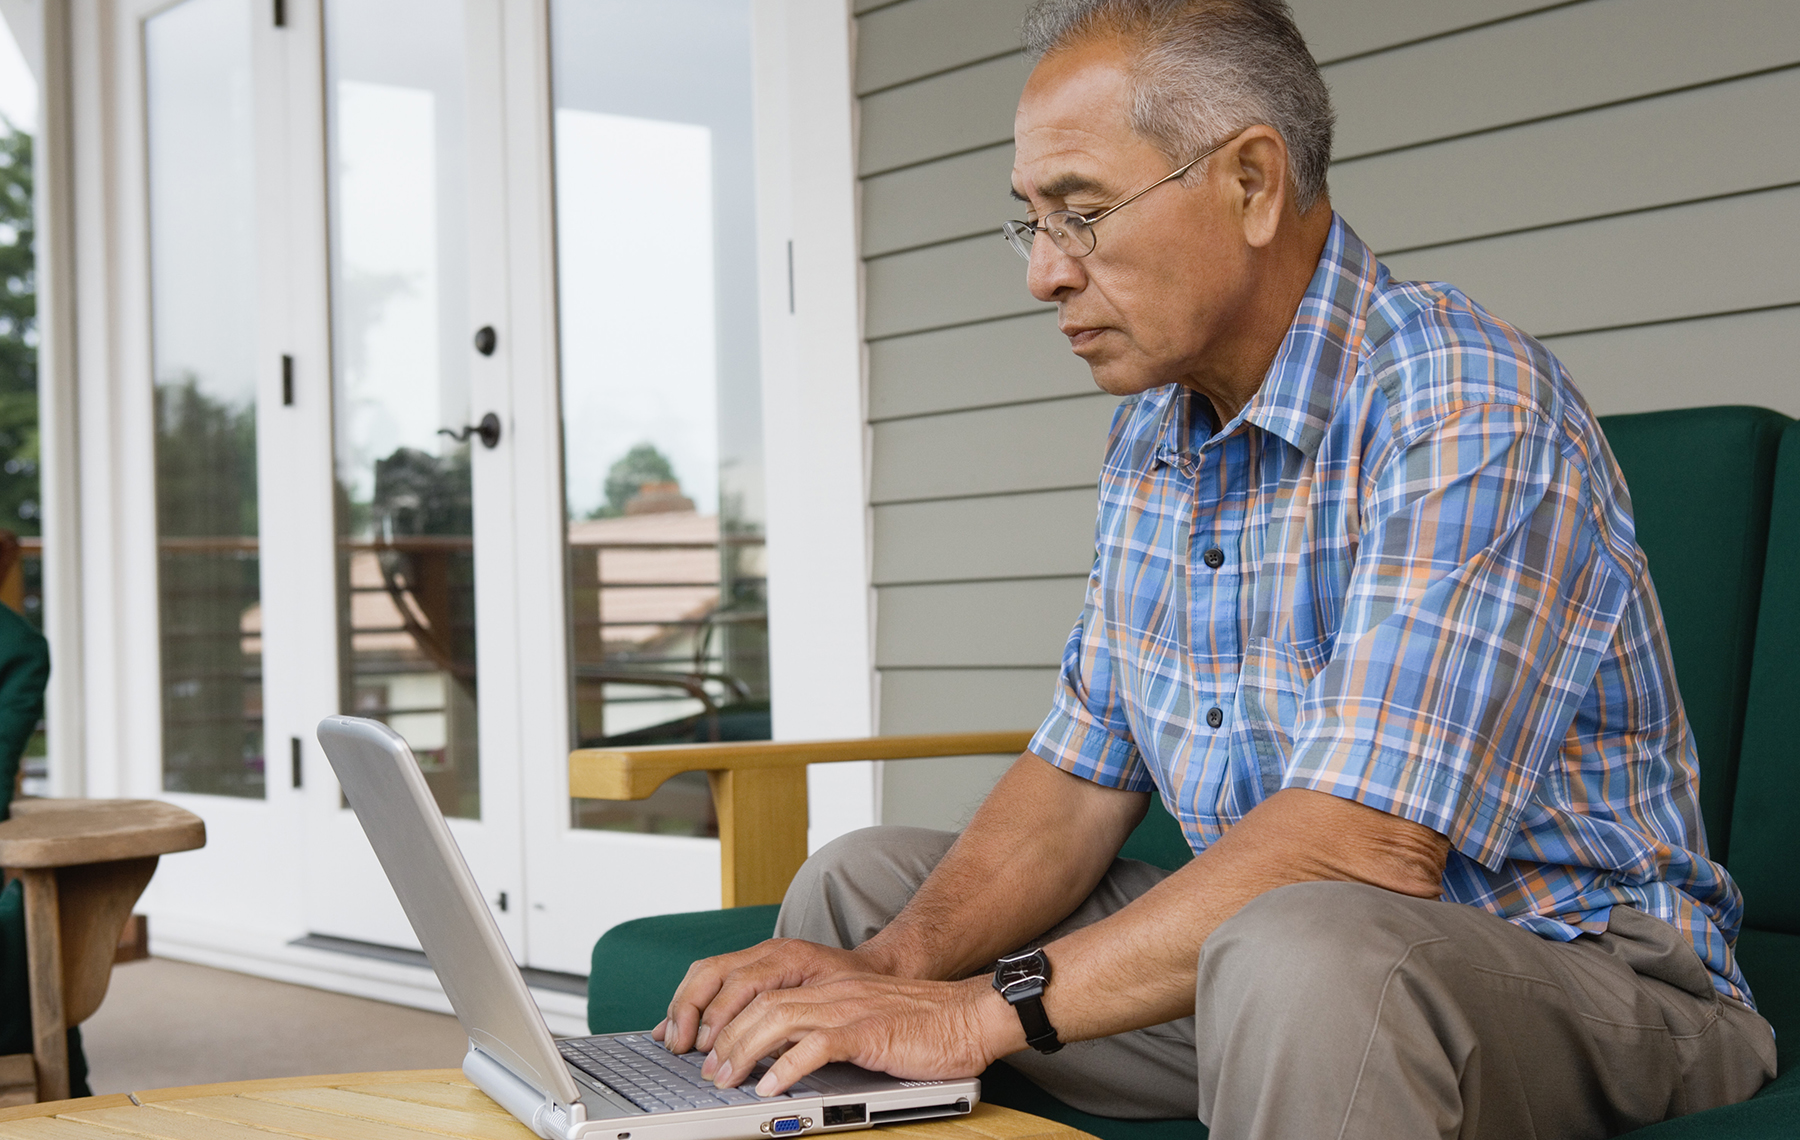 Old man using a computer